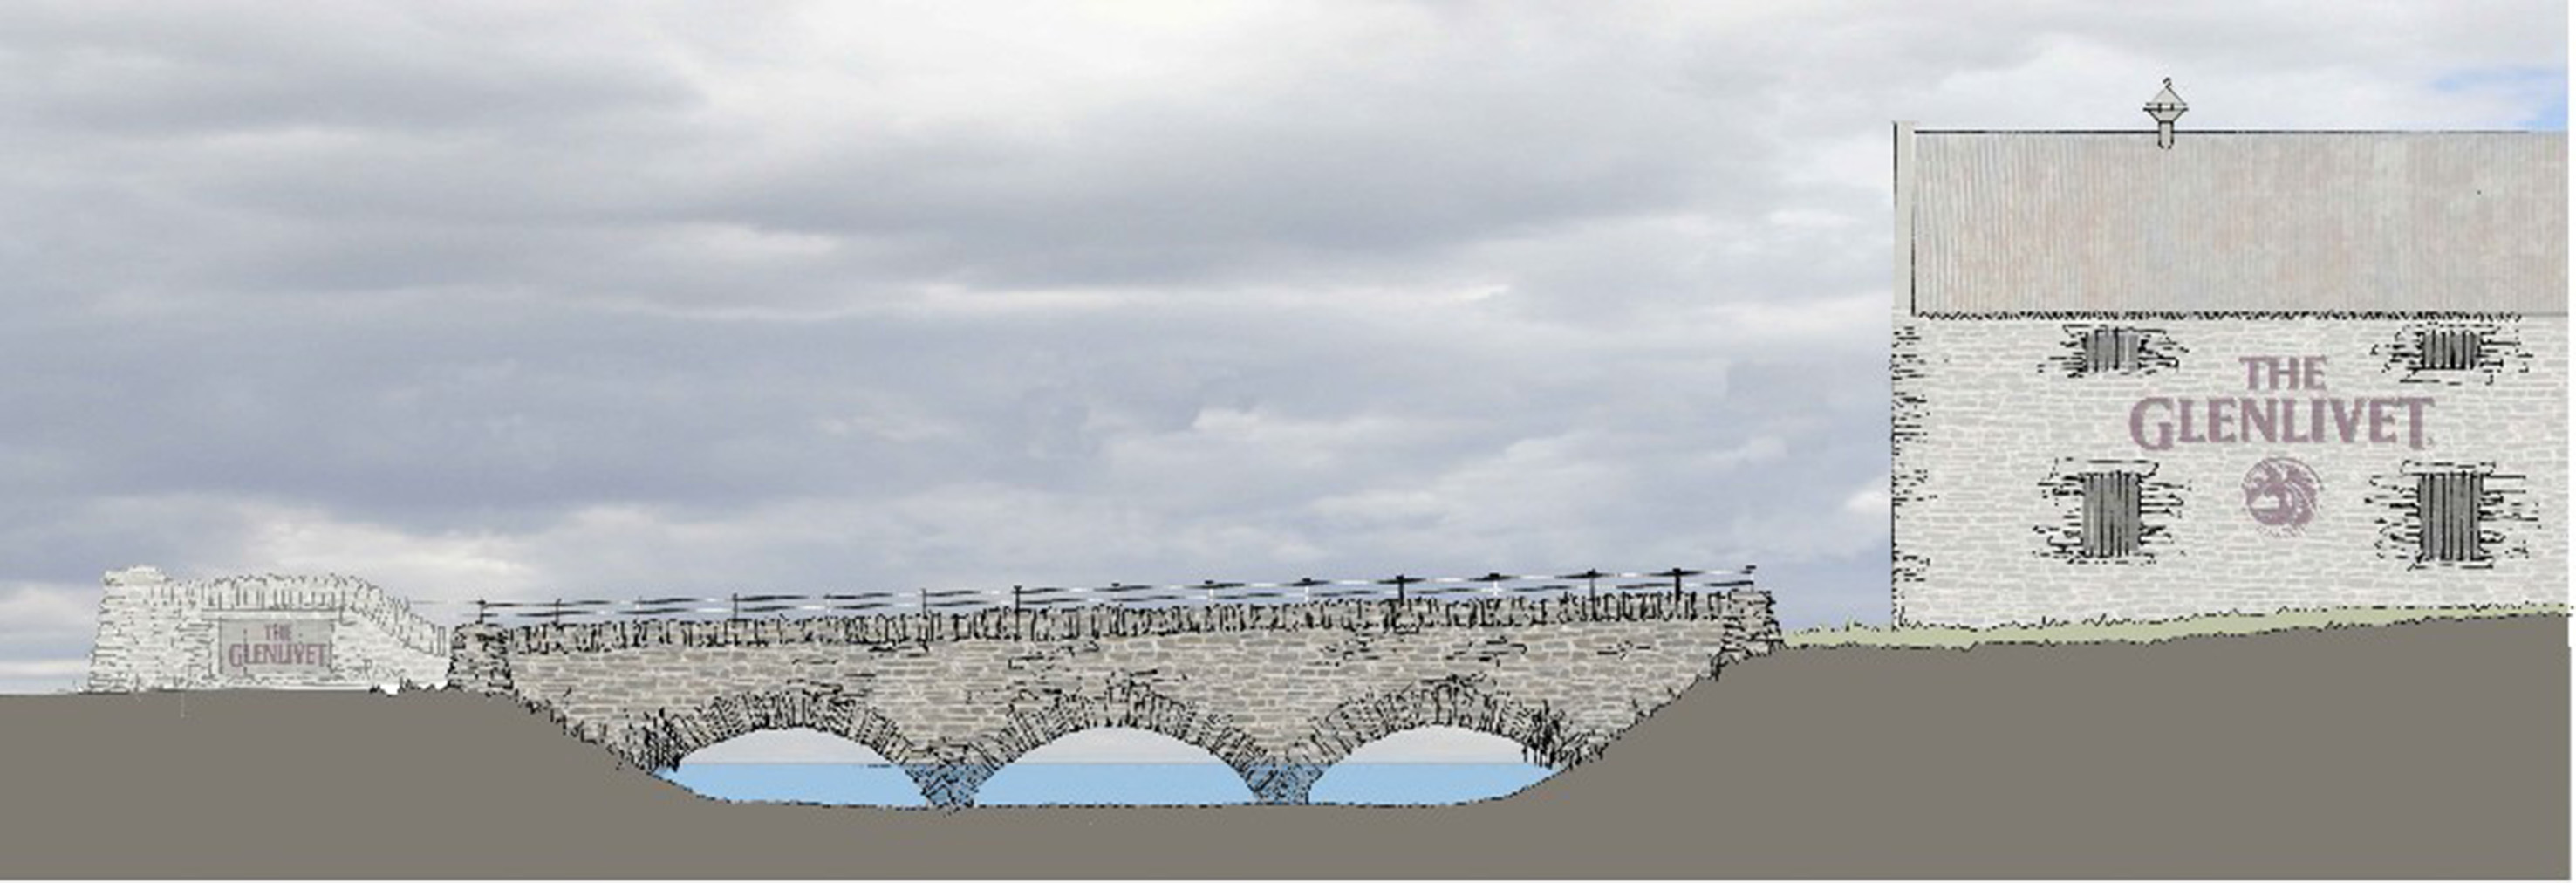 A computer generated image of the new road bridge at The Glenlivet Distillery in Speyside.